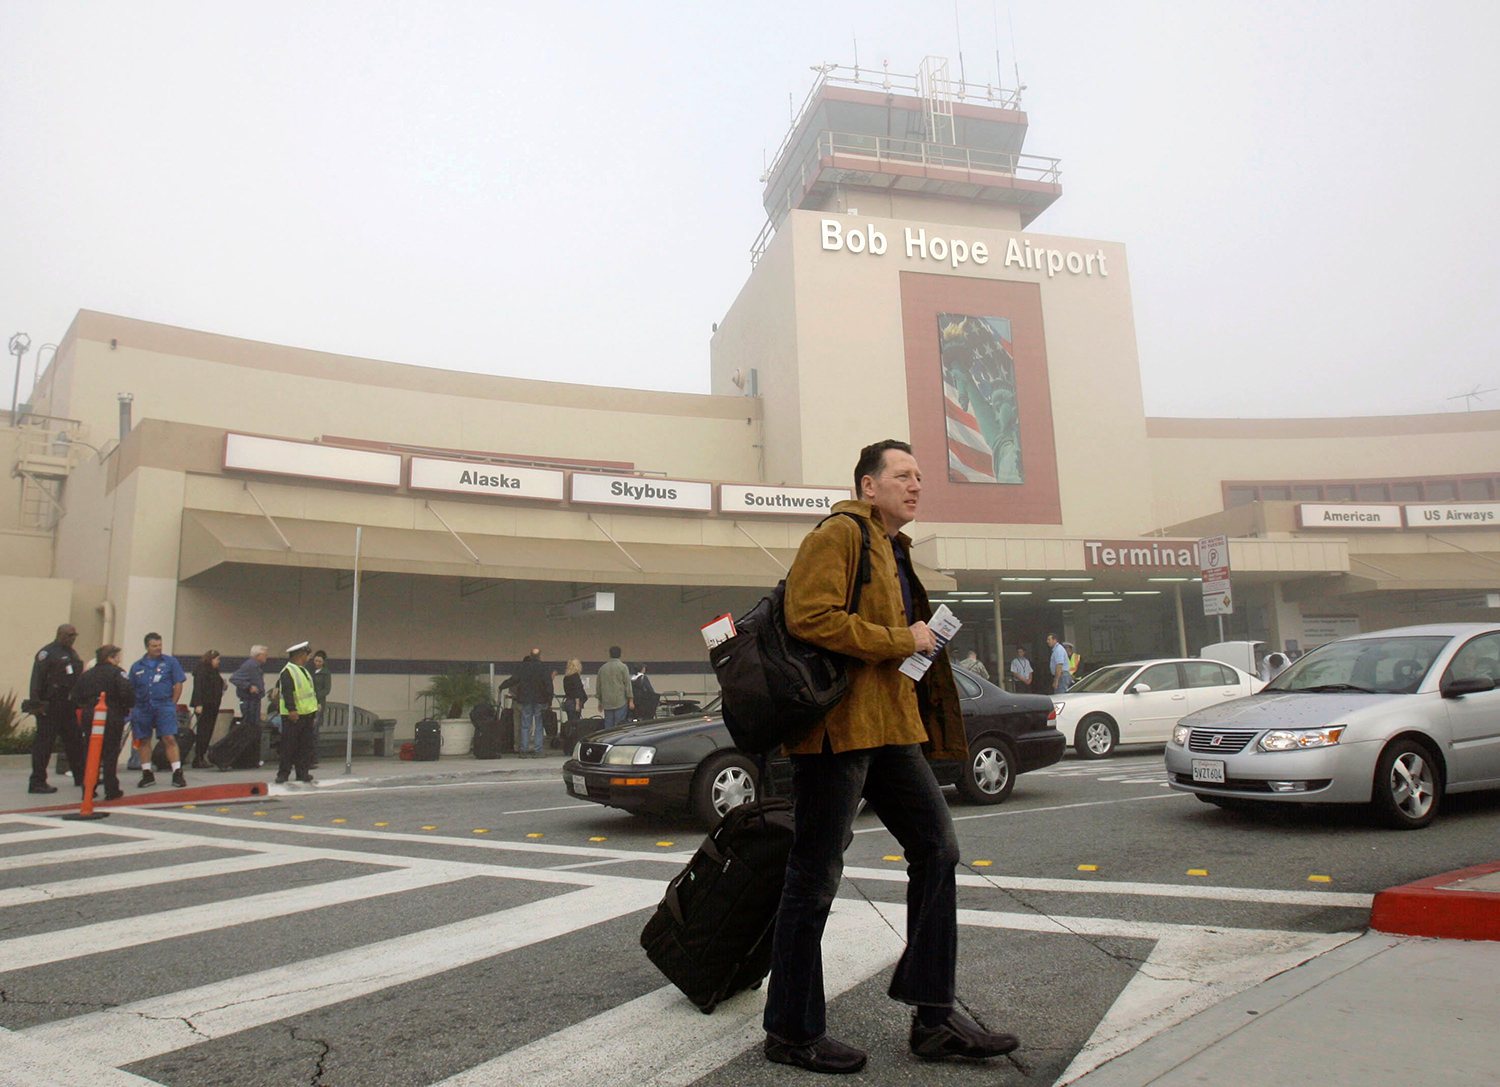 Andy Peters leaves Bob Hope Airport, which was closed due to fog, in Burbank, Calif., Monday, Nov. 19, 2007, after his flight was canceled. Peters mad...